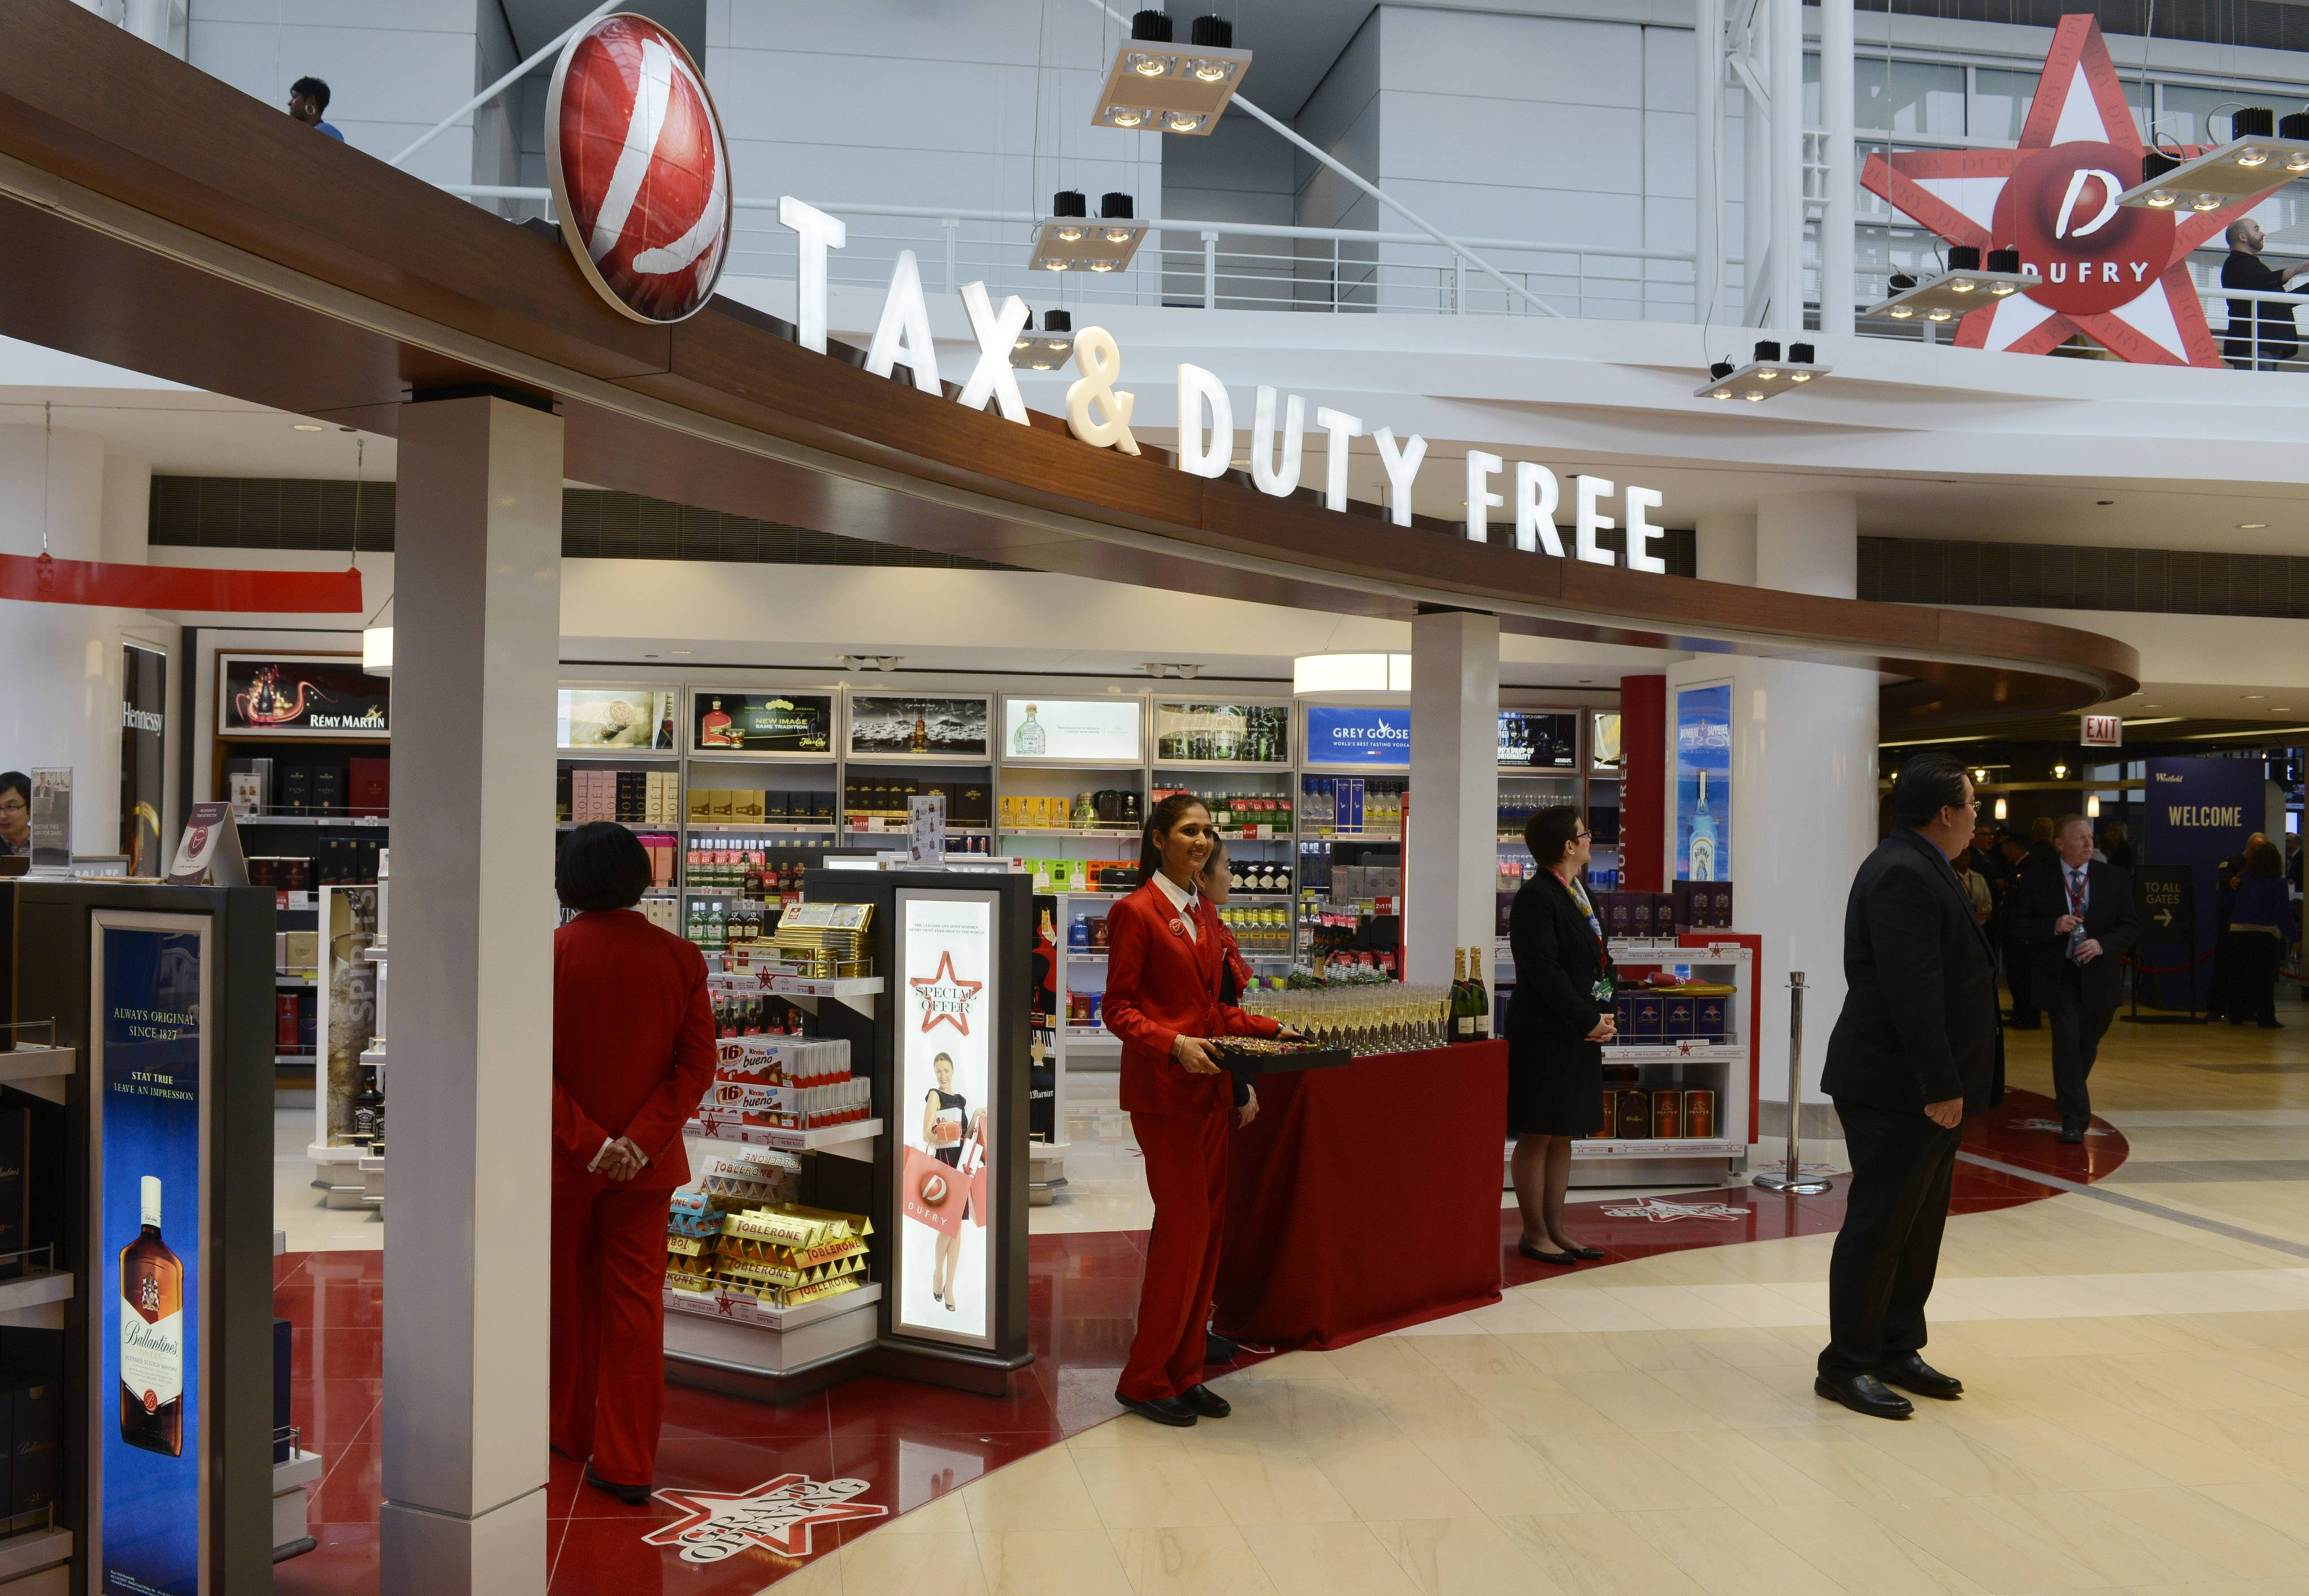 Twenty-four new shops are located past the security area of International Terminal 5 at O'Hare International Airport.